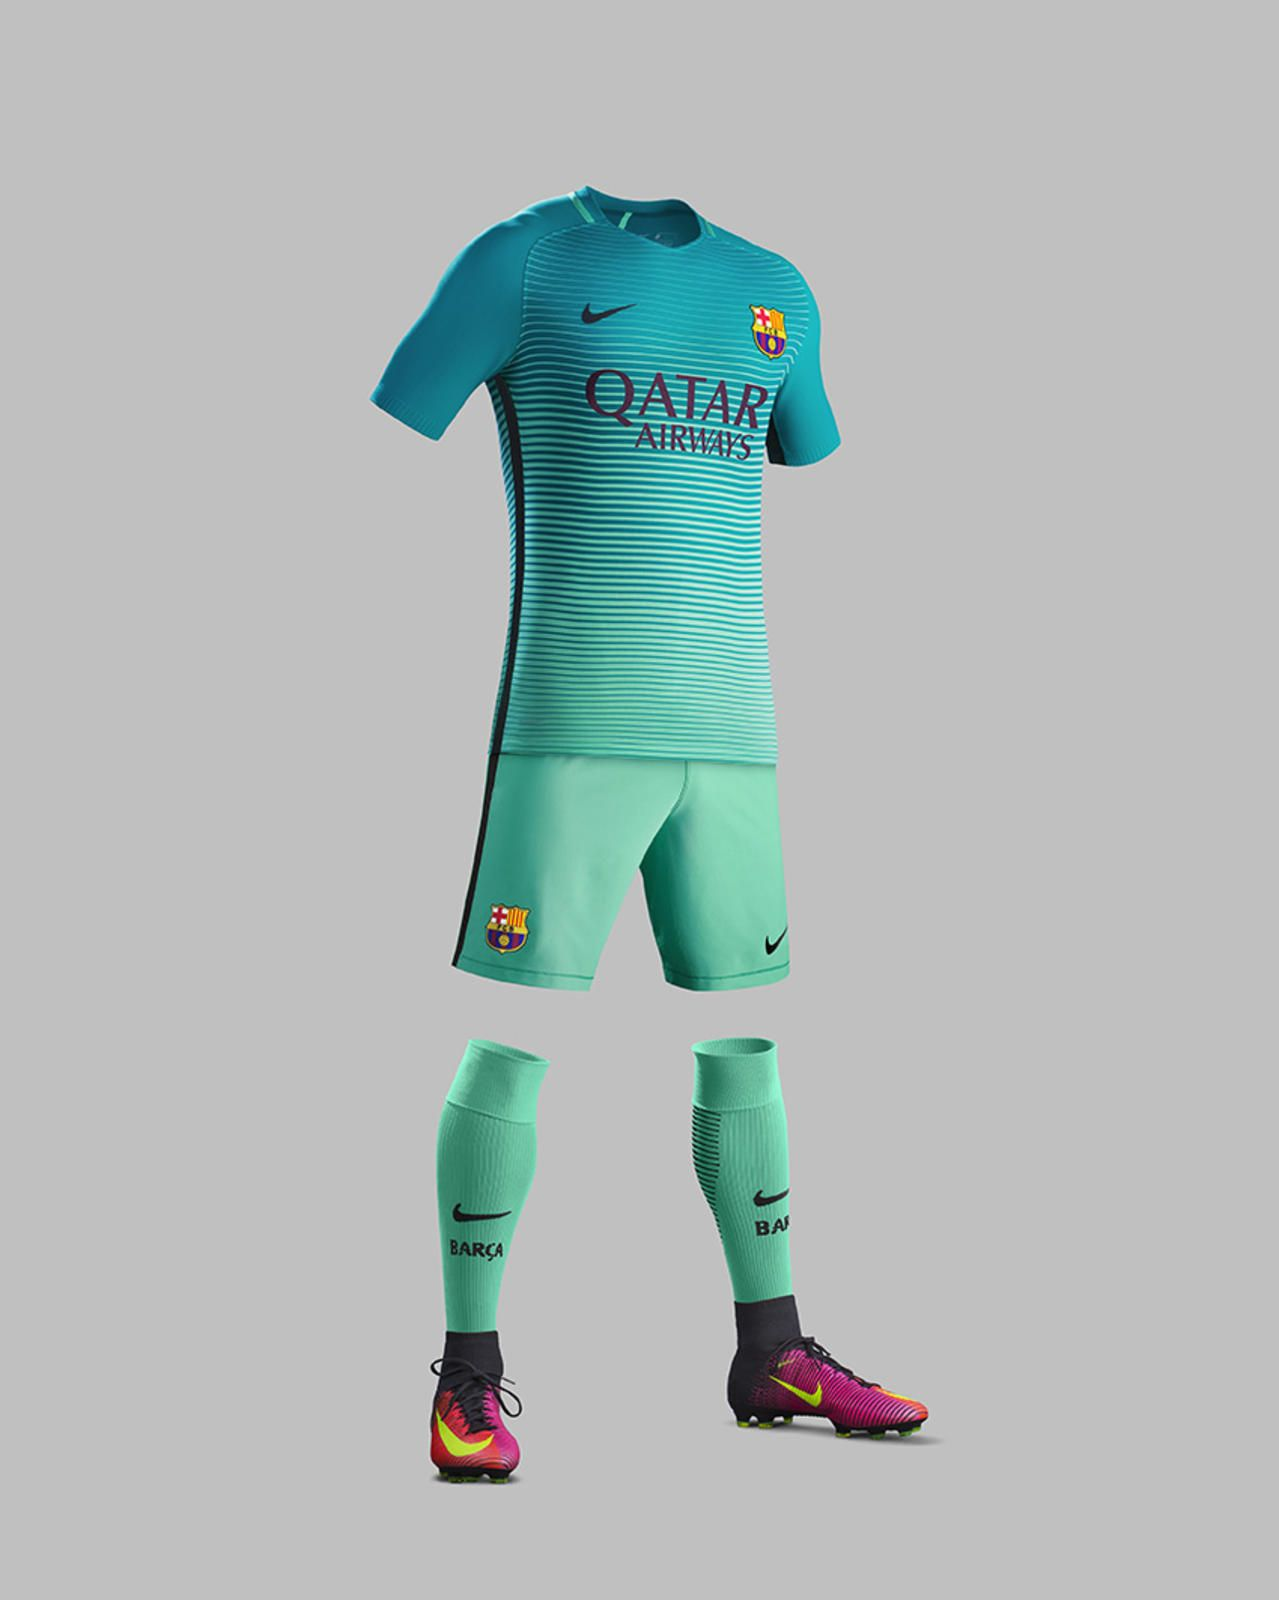 e892ca5d1d54f Terceira camisa do Barcelona 2016-2017 Nike kit